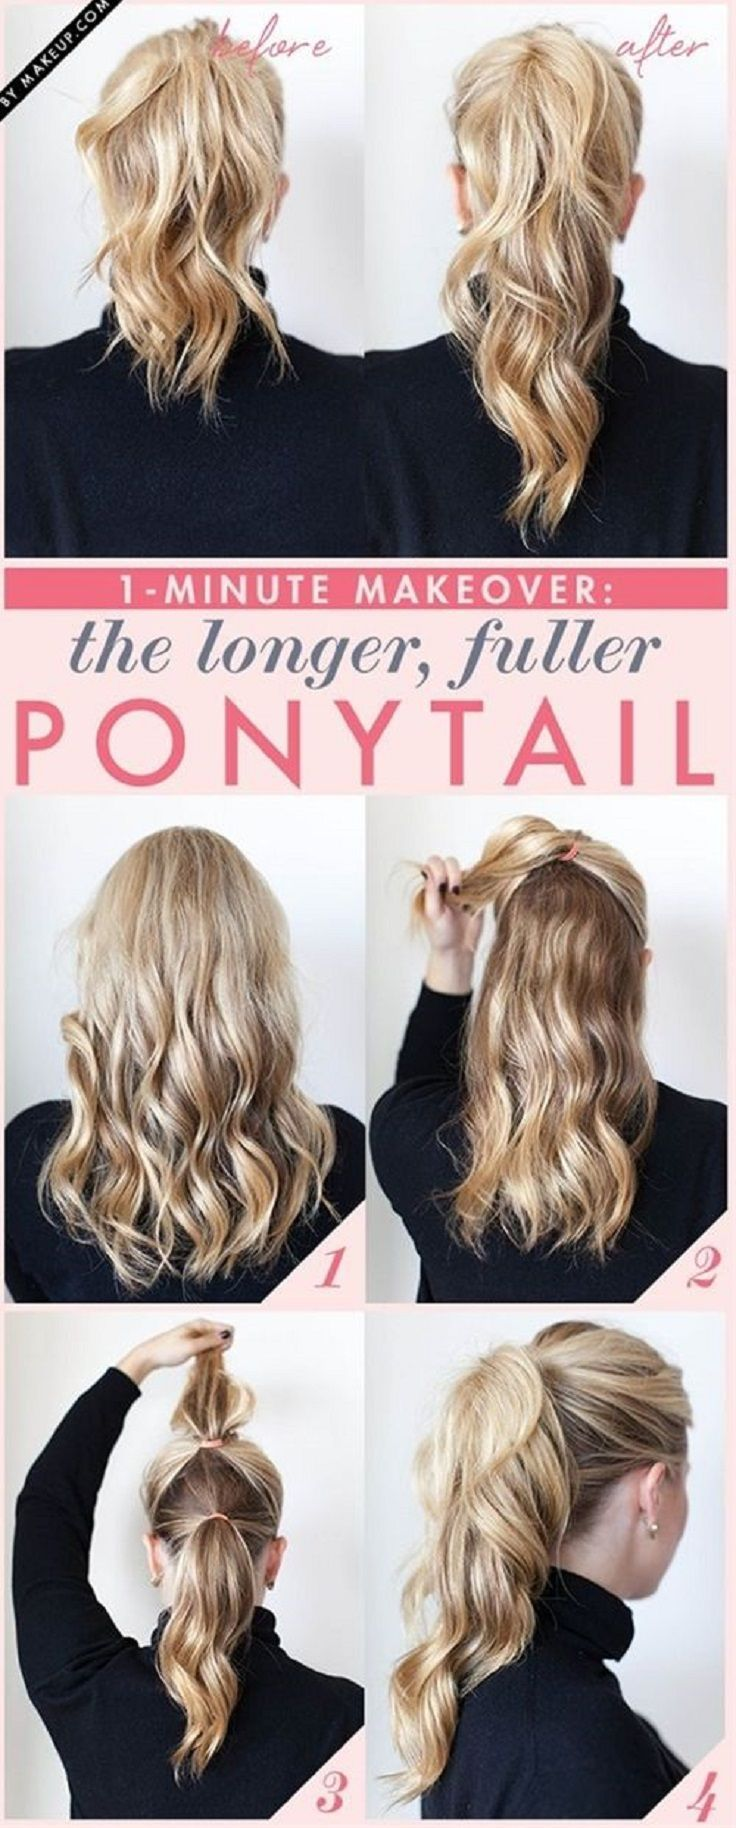 Ponytail like never before love it!